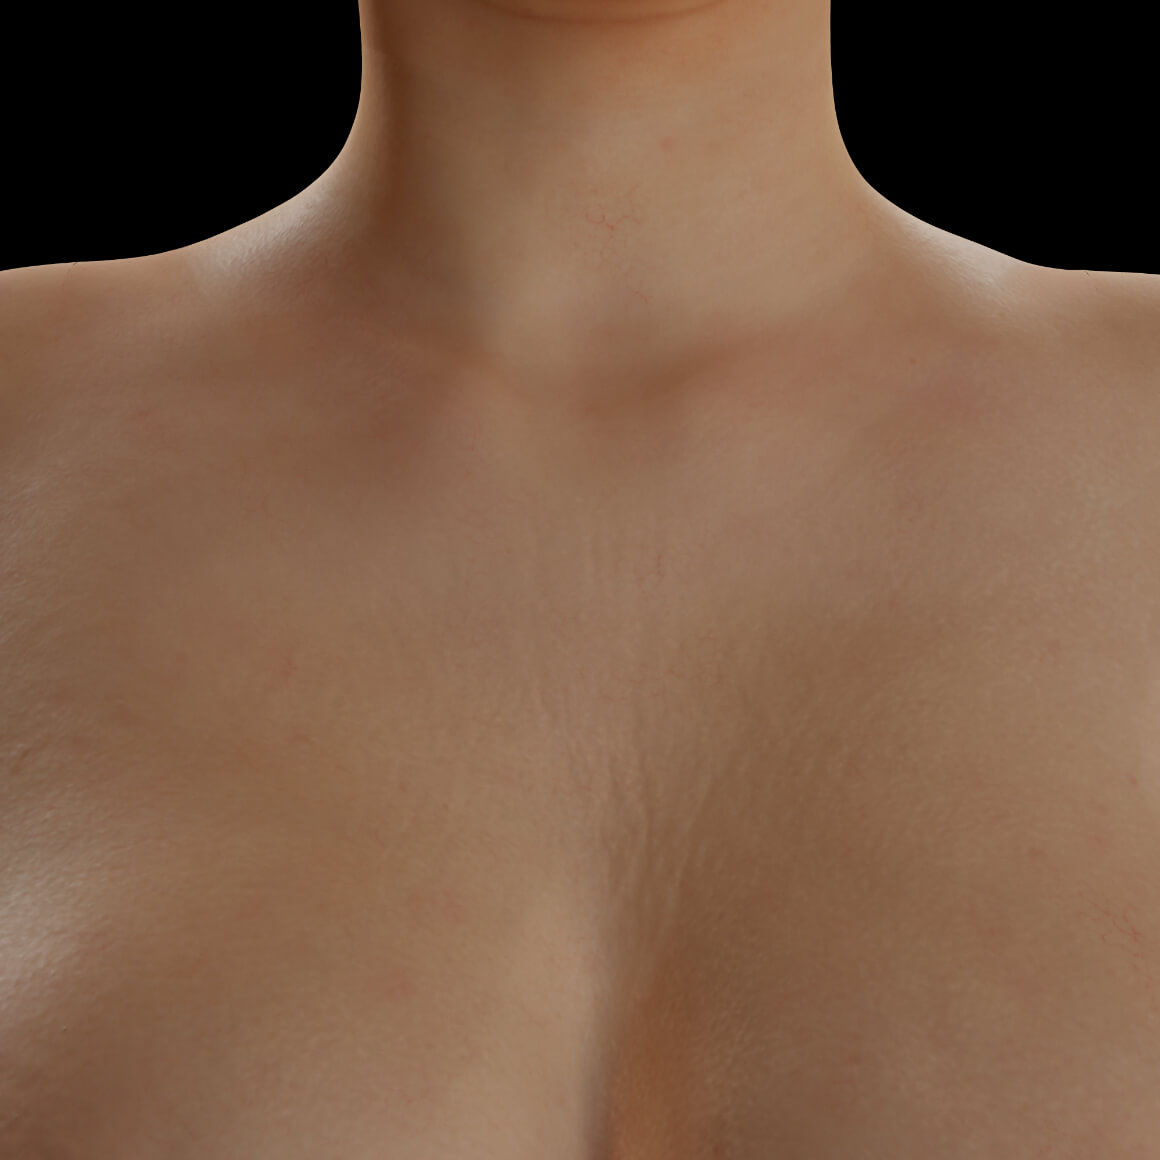 Female patient from Clinique Chloé facing front after PRP treatments for the tightening of the skin of the décolleté